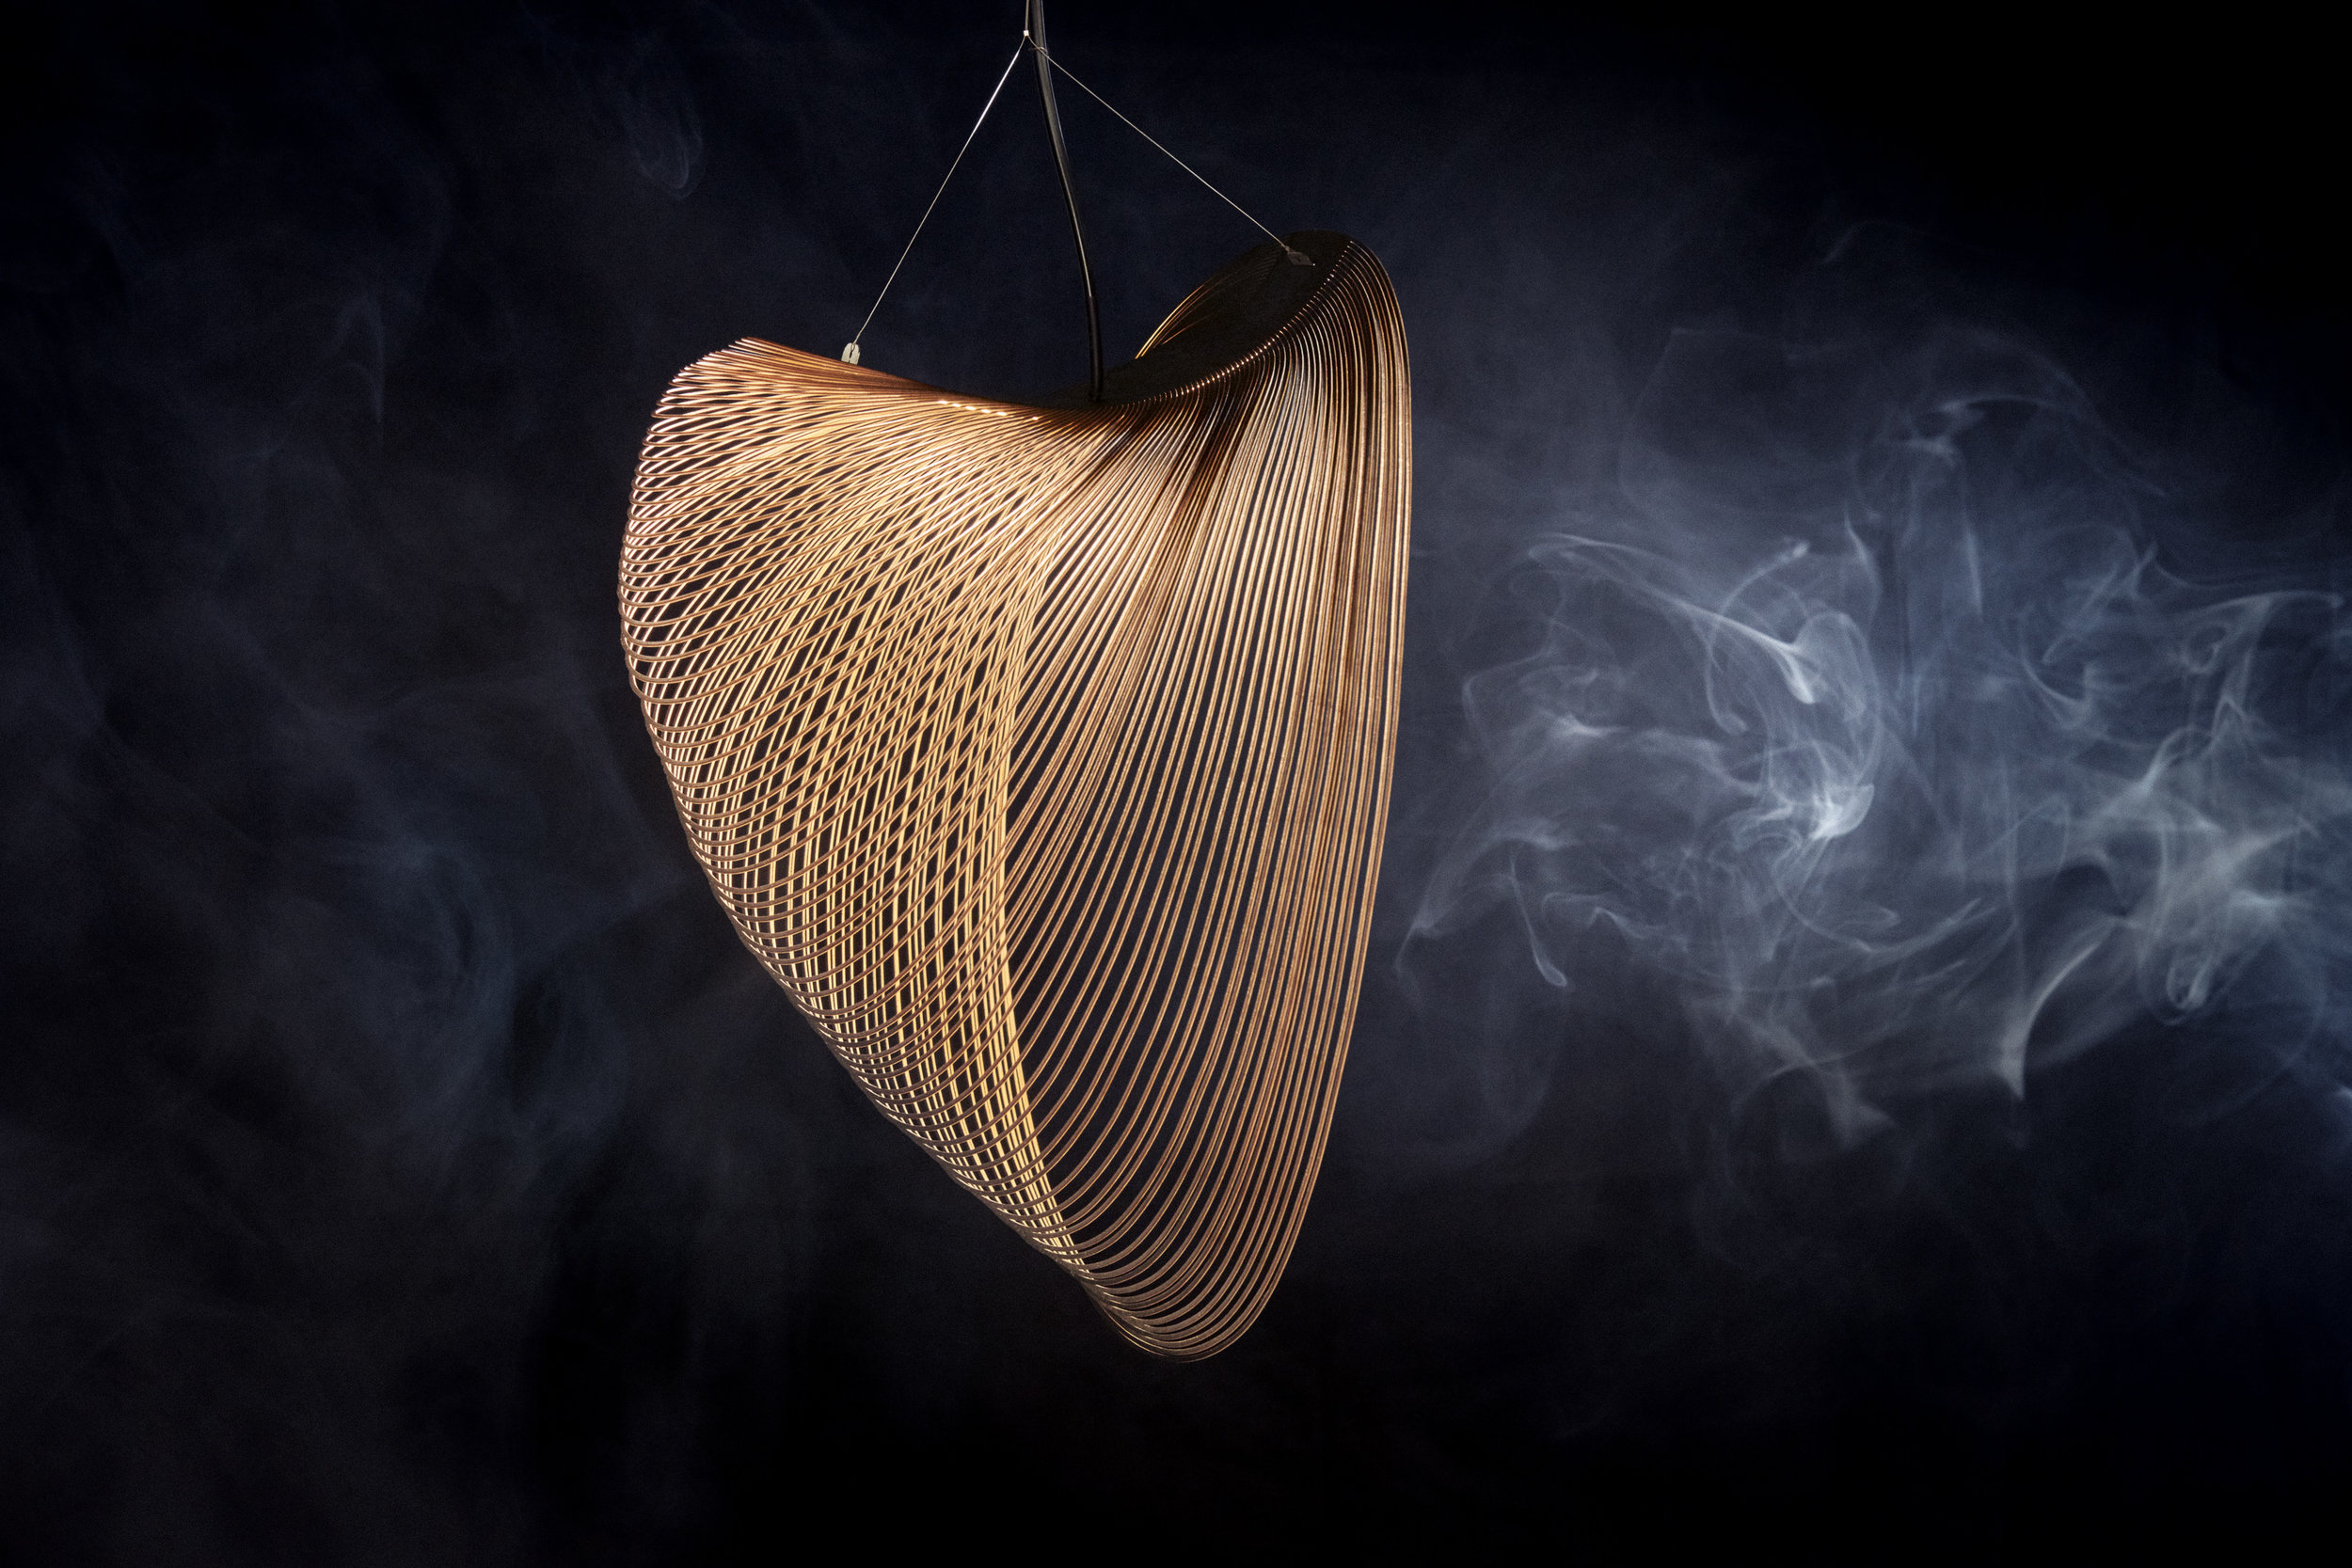 Zsuzsanna Horvath's 'Air' light in laser cut paper. Although impressive, the image doesn't relay  the delicacy and movement of the design which is quite incredible. Photo by Ville Vappula